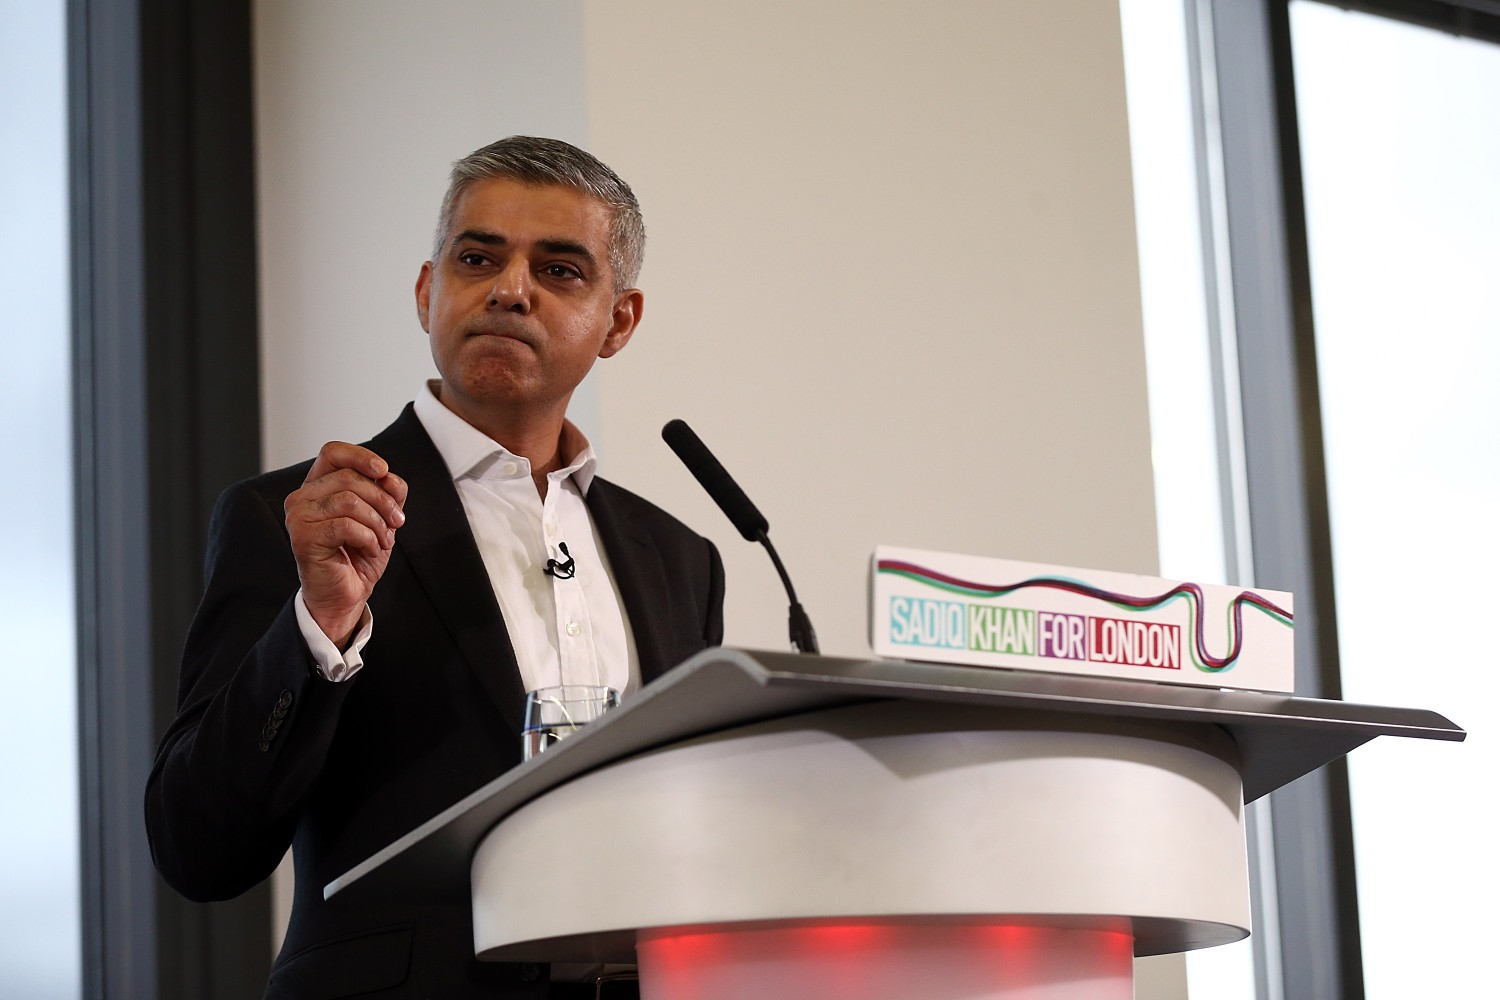 The London Assembly called on Sadiq Khan to set out a plan to tackle homophobia